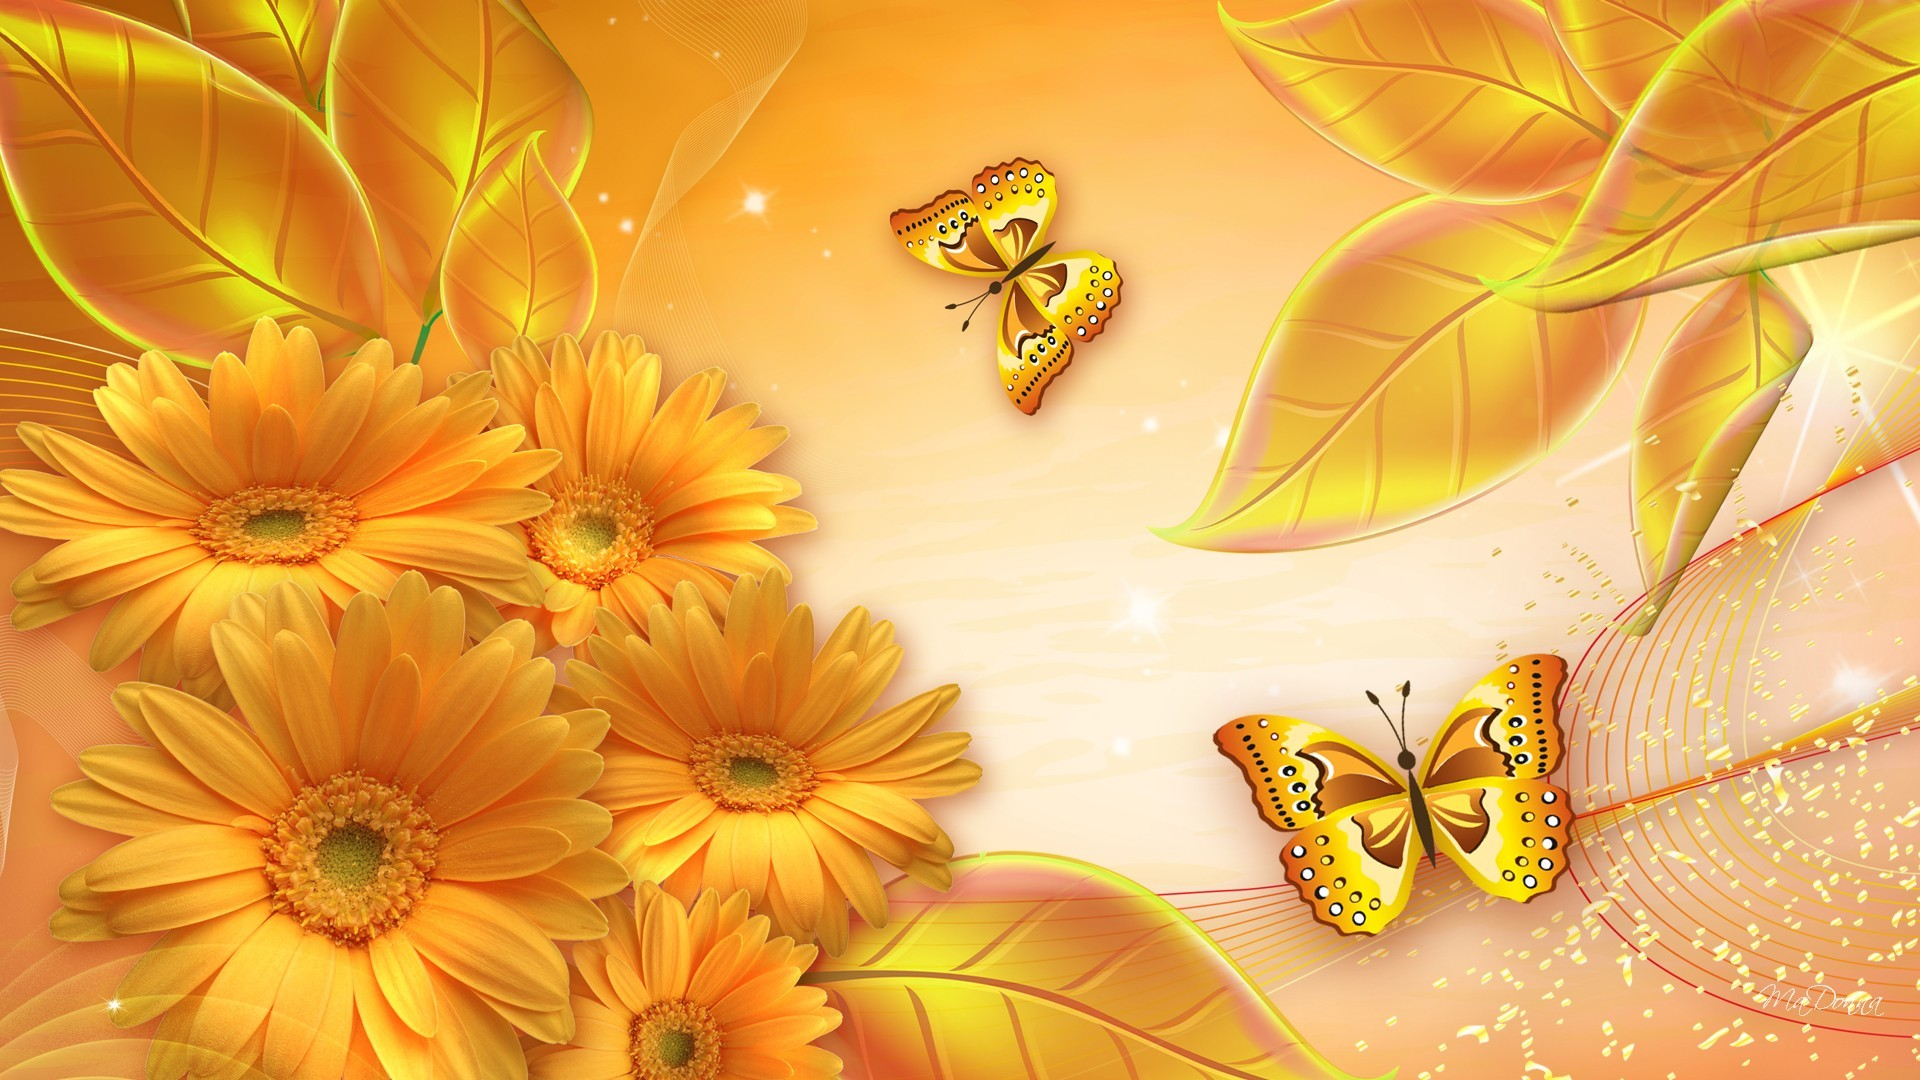 1920x1080 Flowers Gold Awesome Wallpaper